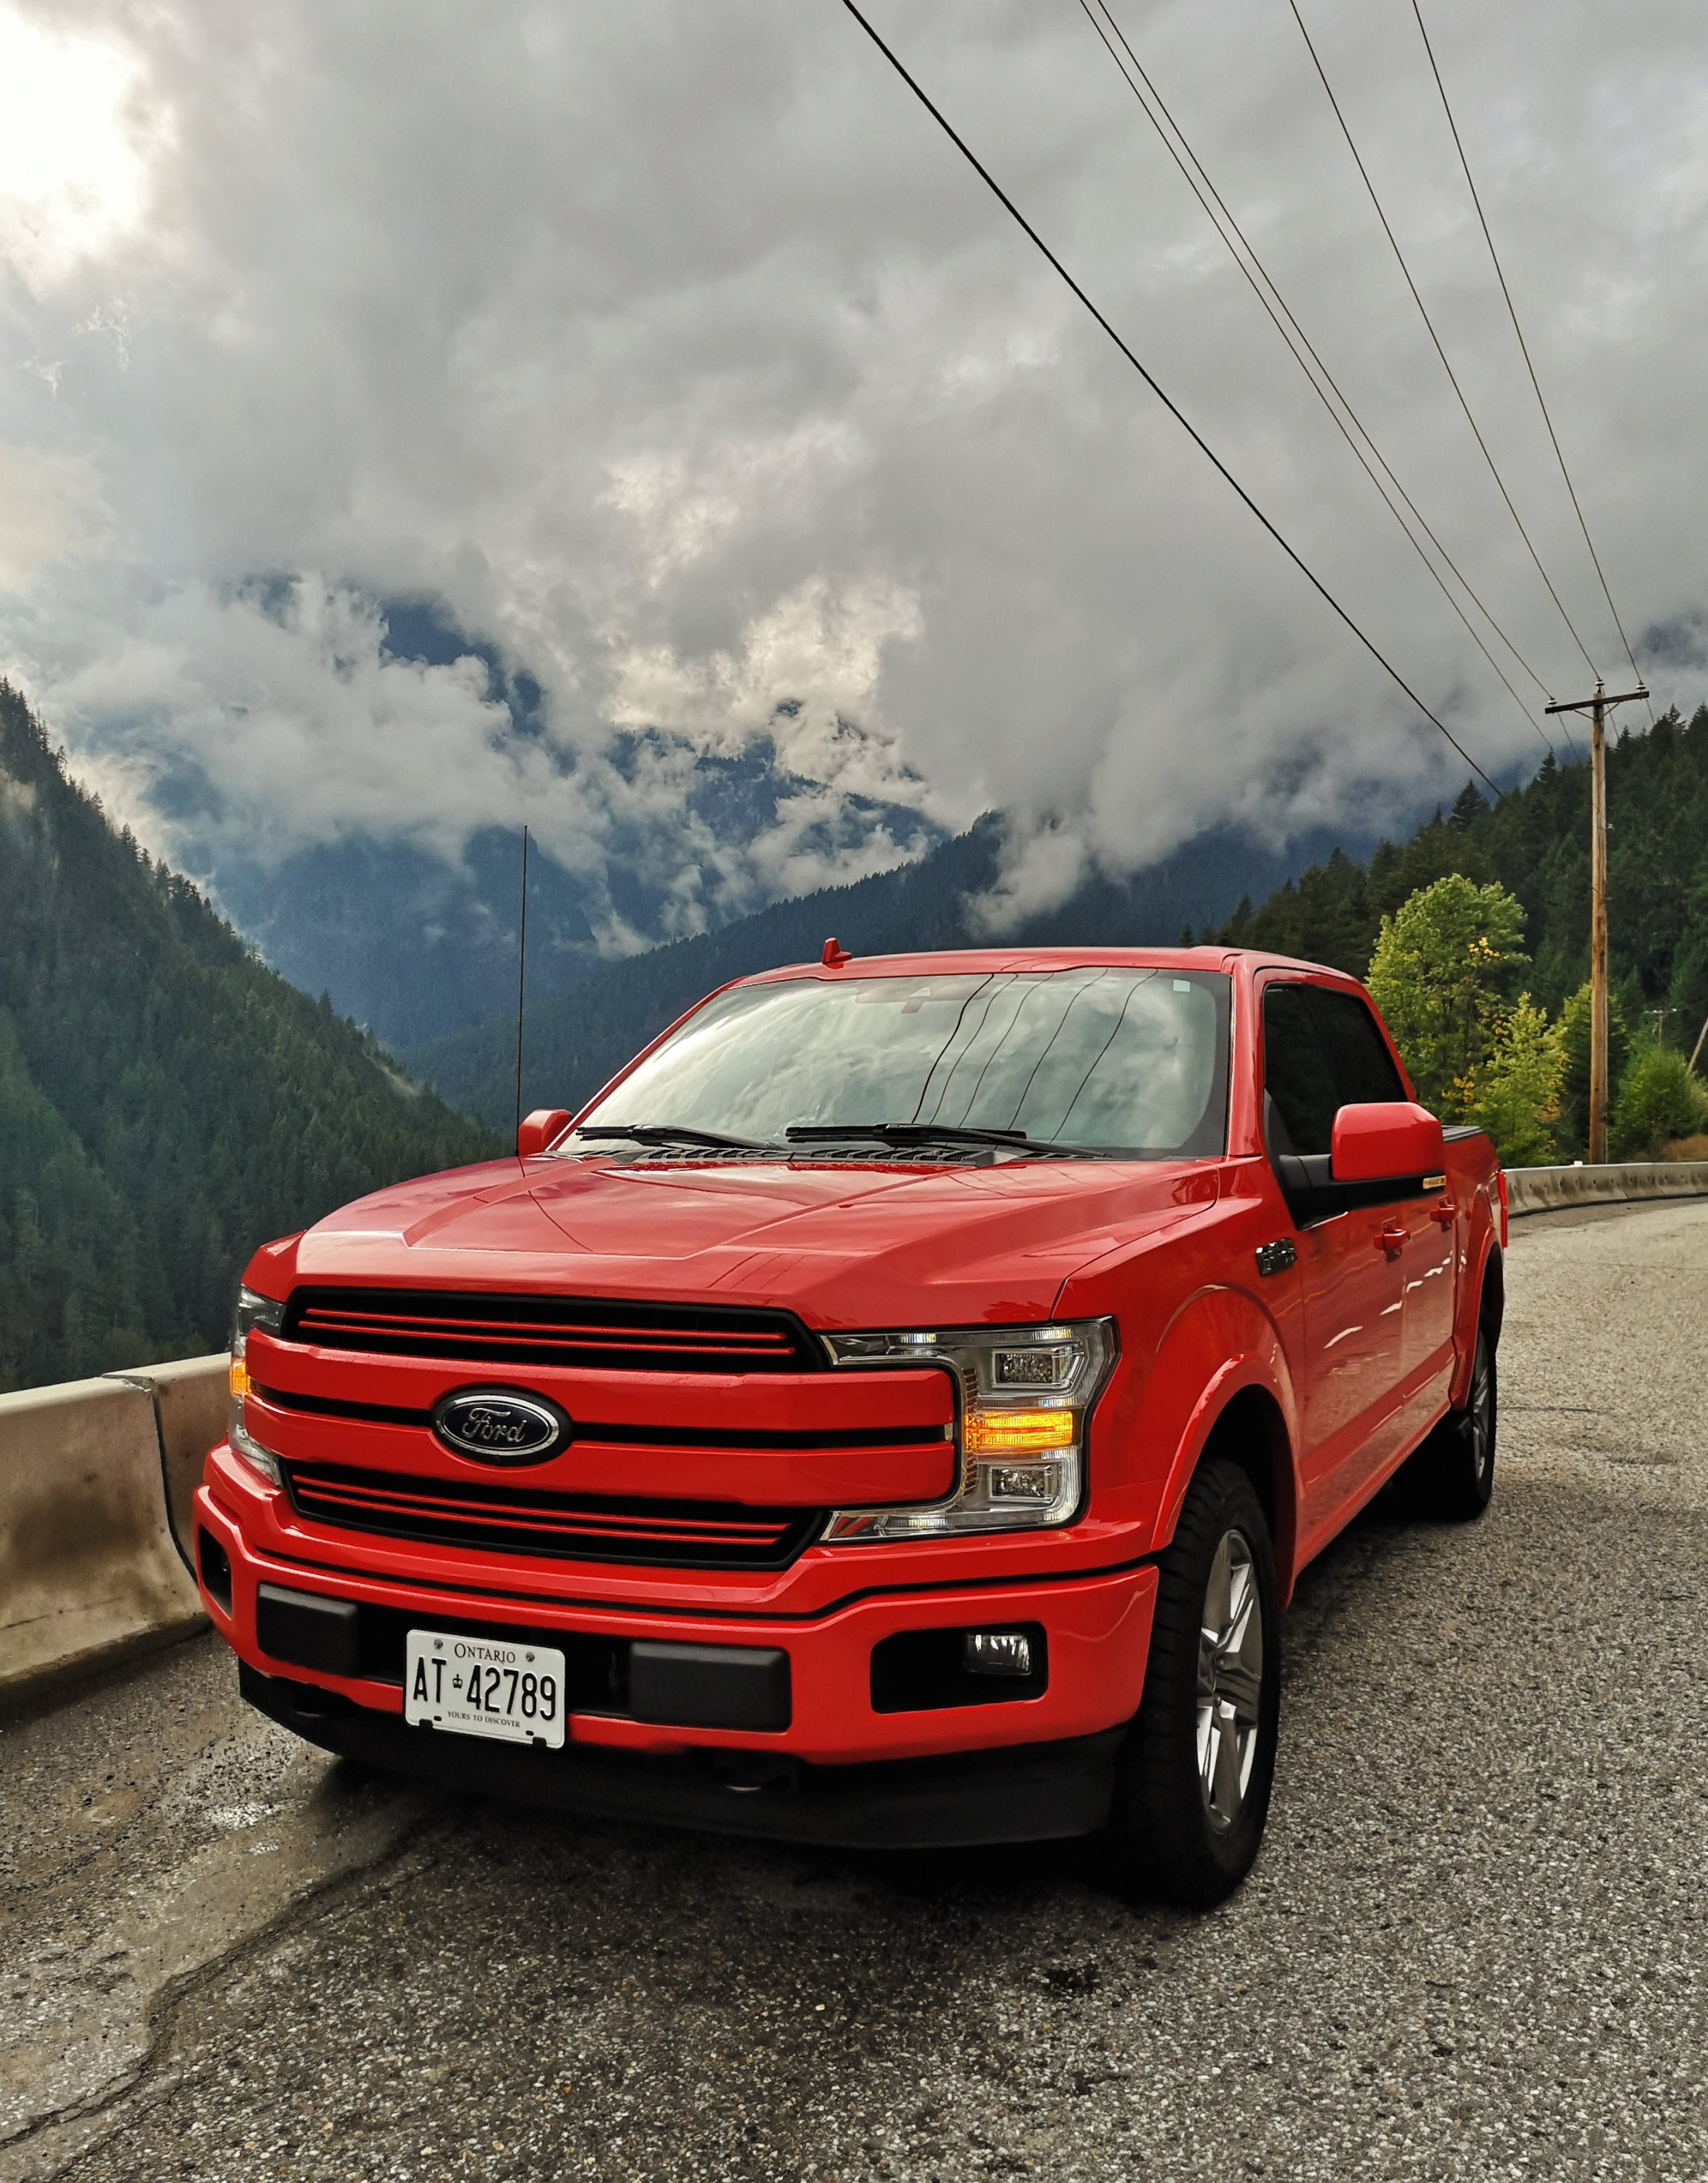 Ford F150 Lariat Review, Ford F150, 2019 review Ford F150 Lariat Review